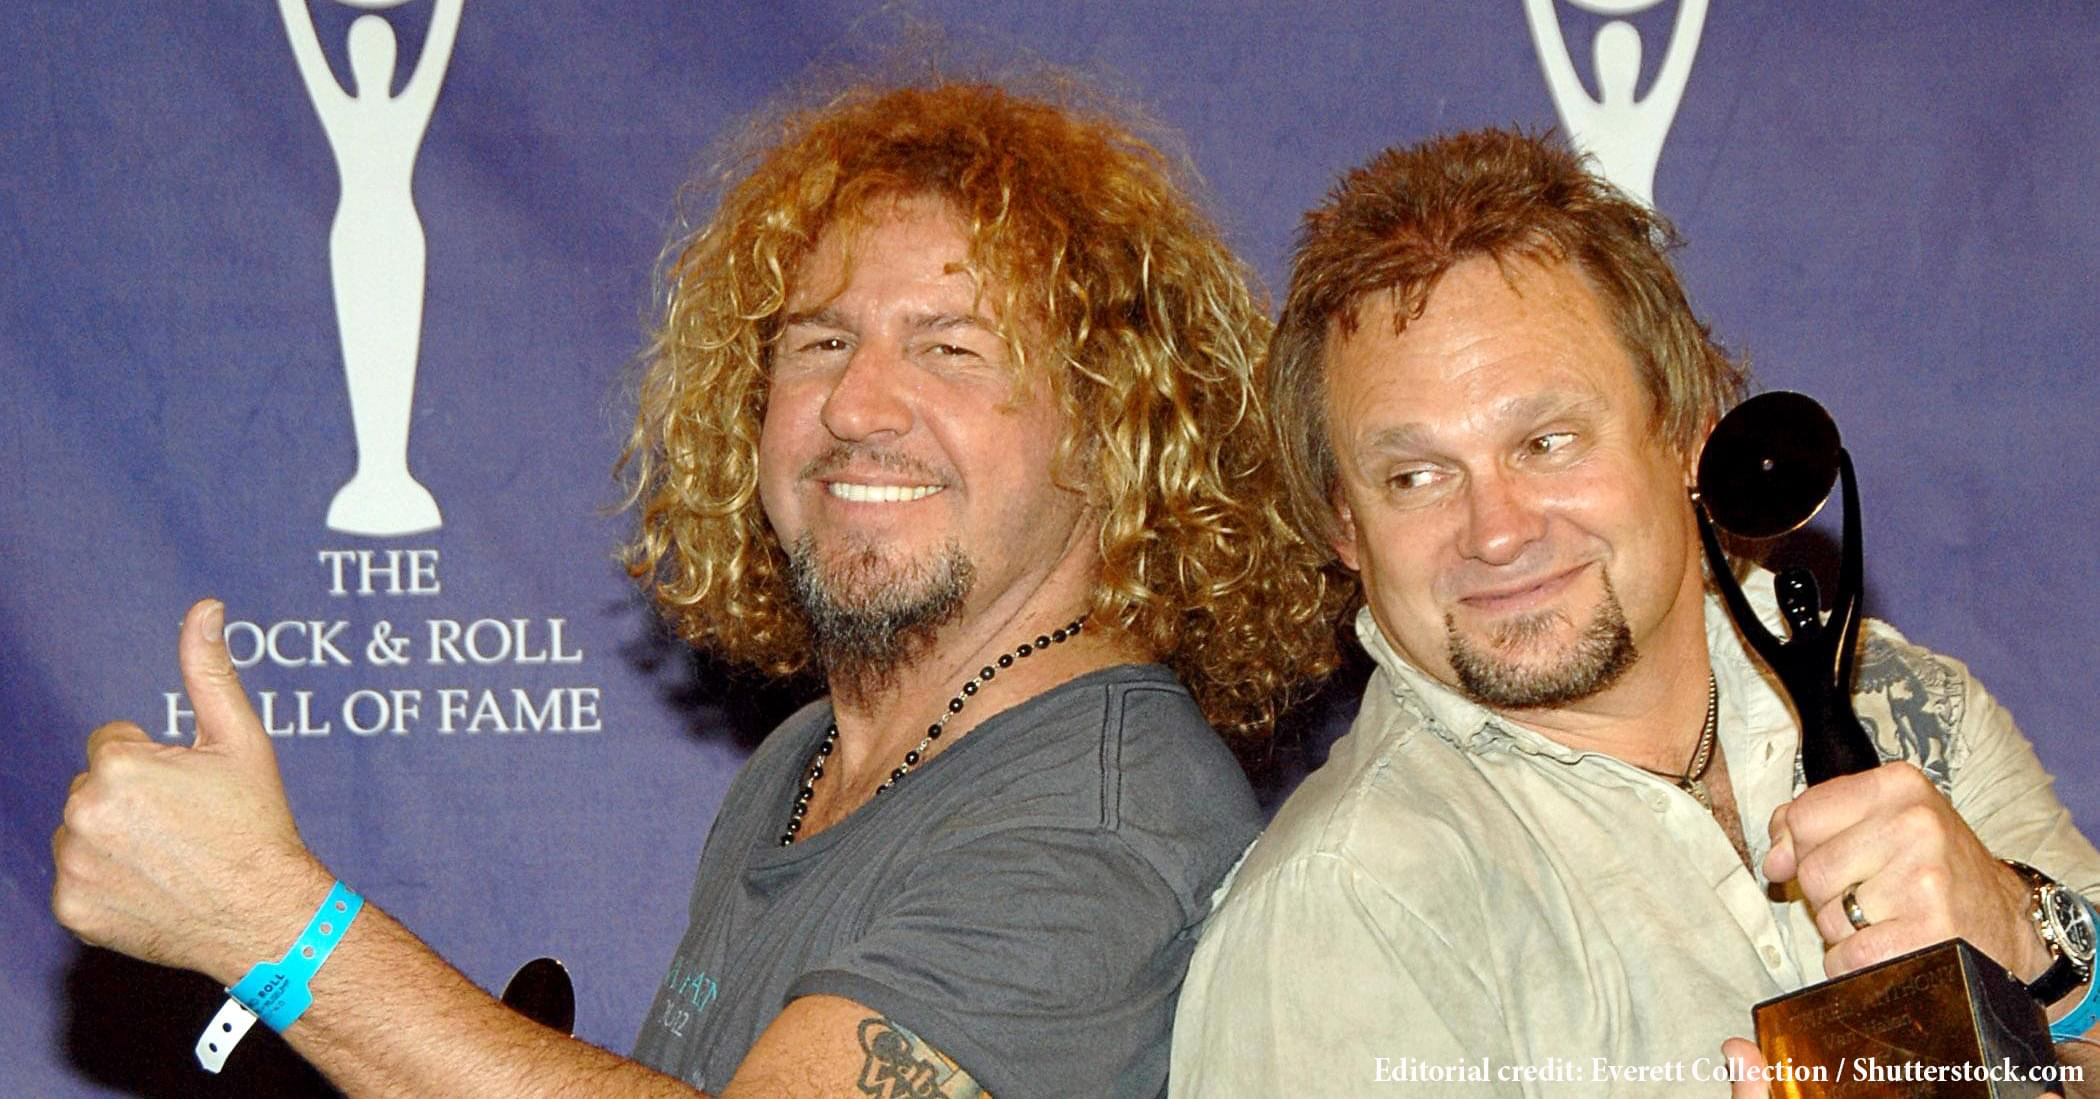 Van Halen Reached Out to Michael Anthony About a Reunion